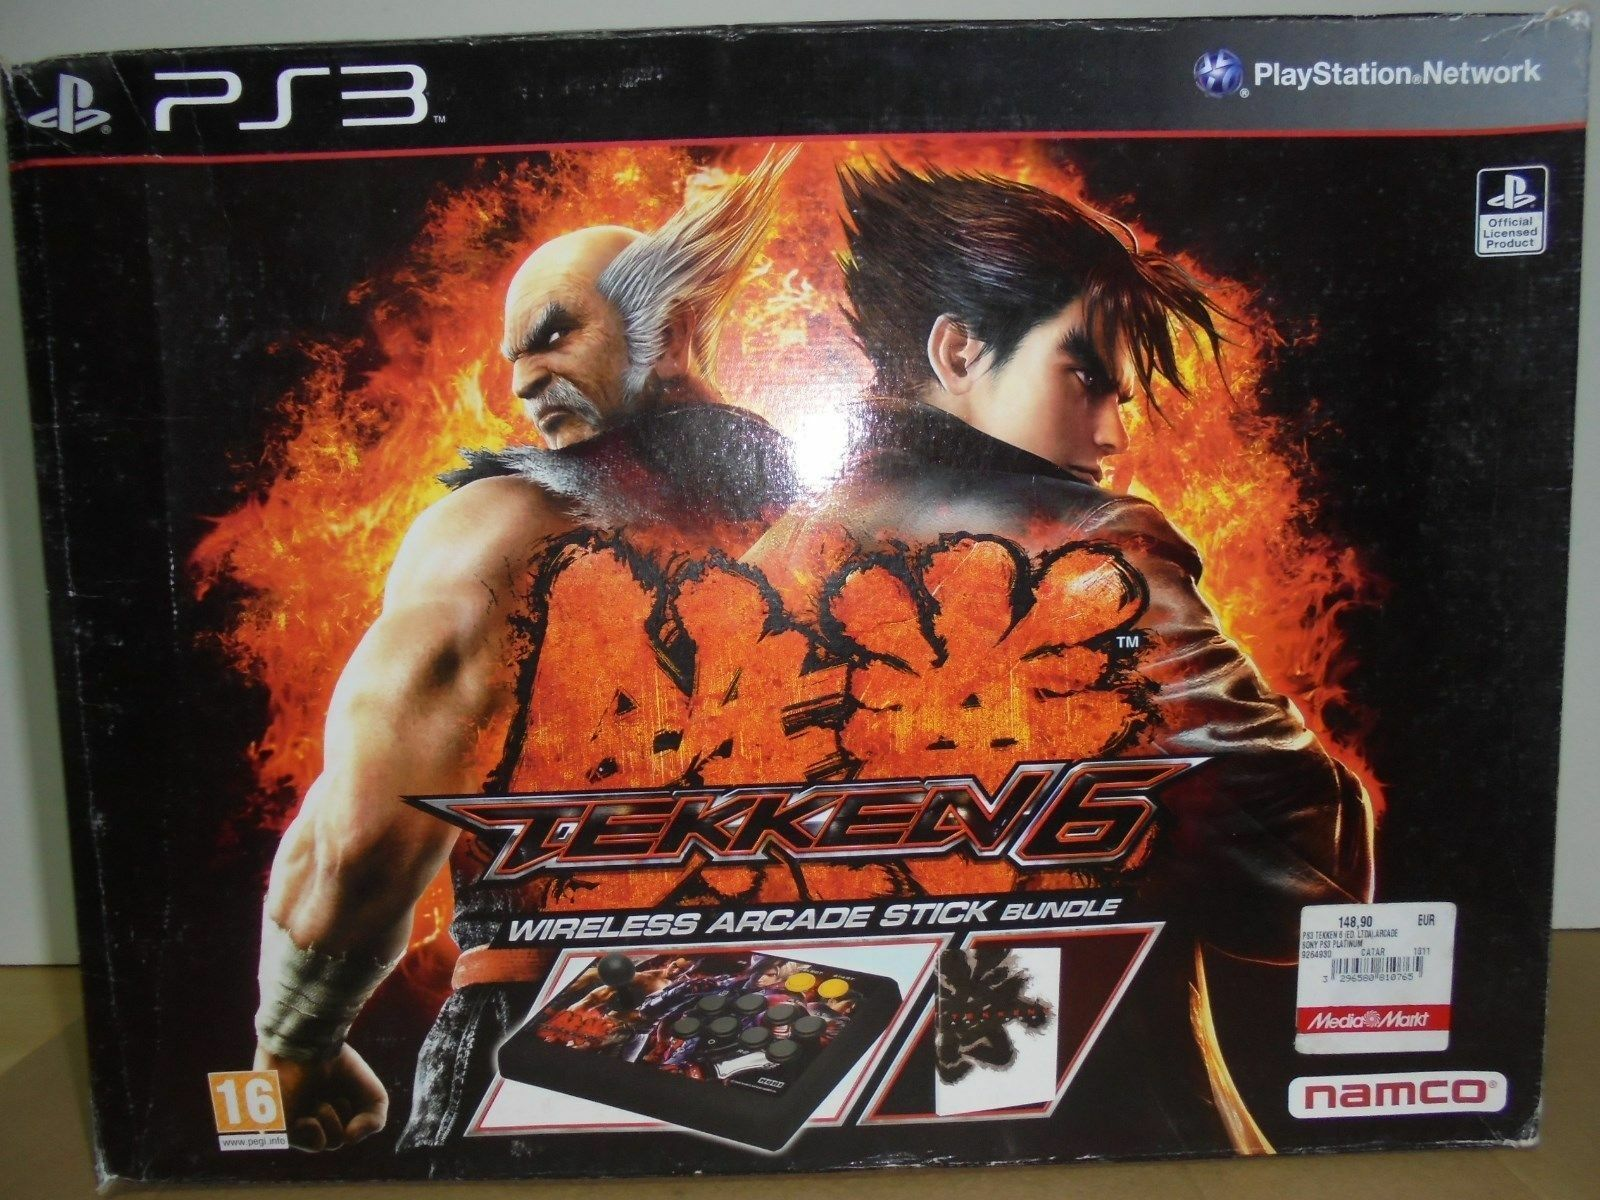 TEKKEN 6 WIRELESS ARCADE STICK BUNDLE  PS3  PlayStation  NAMCO - NEW